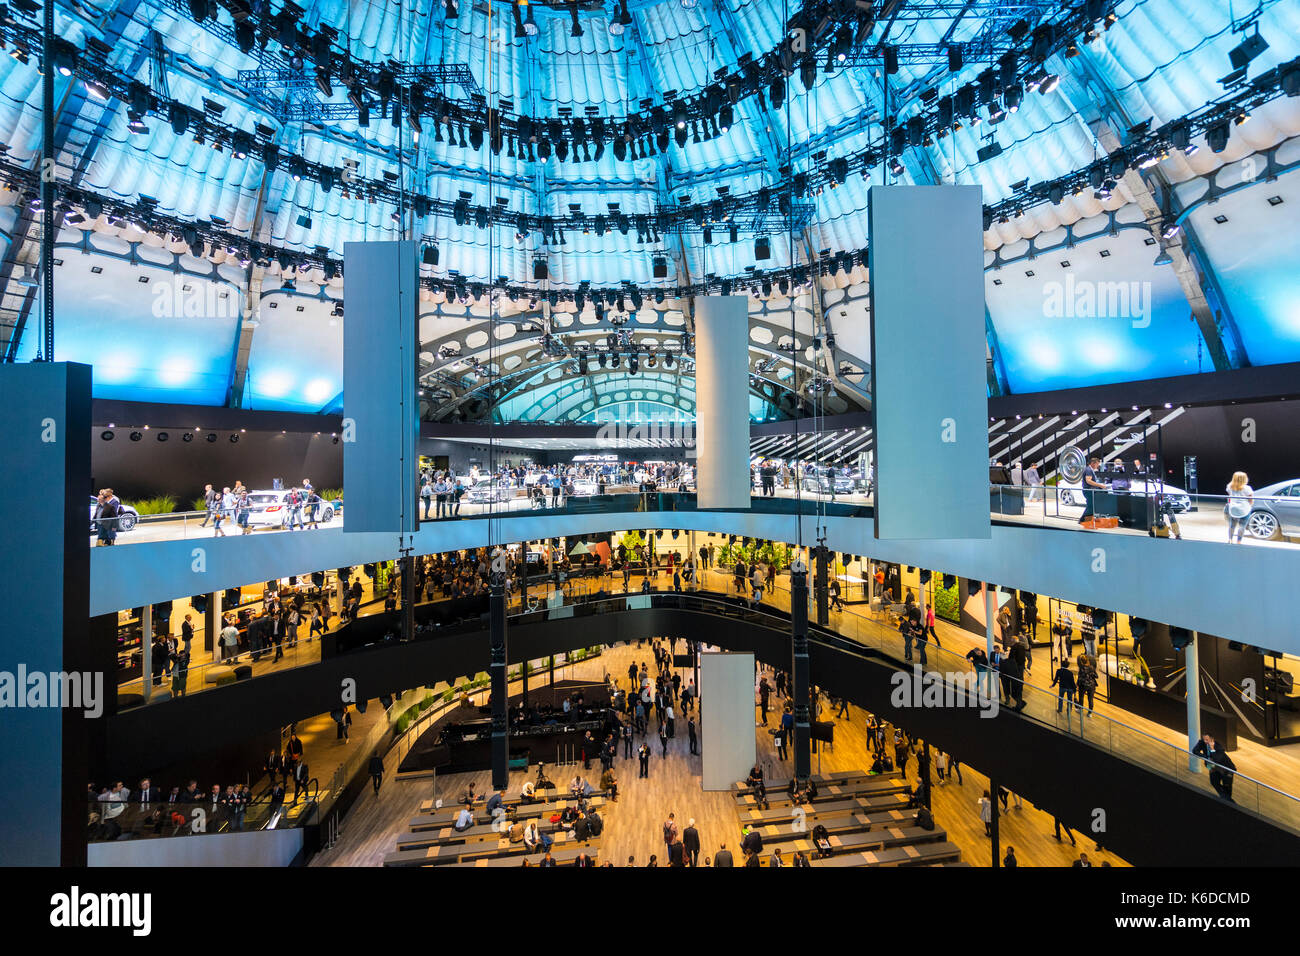 Frankfurt, Germany. , . Frankfurt Motor Show 2017 press day previewing latest vehicles at world's largest motor show. Interior of huge Mercedes stand . Credit: Iain Masterton/Alamy Live News - Stock Image